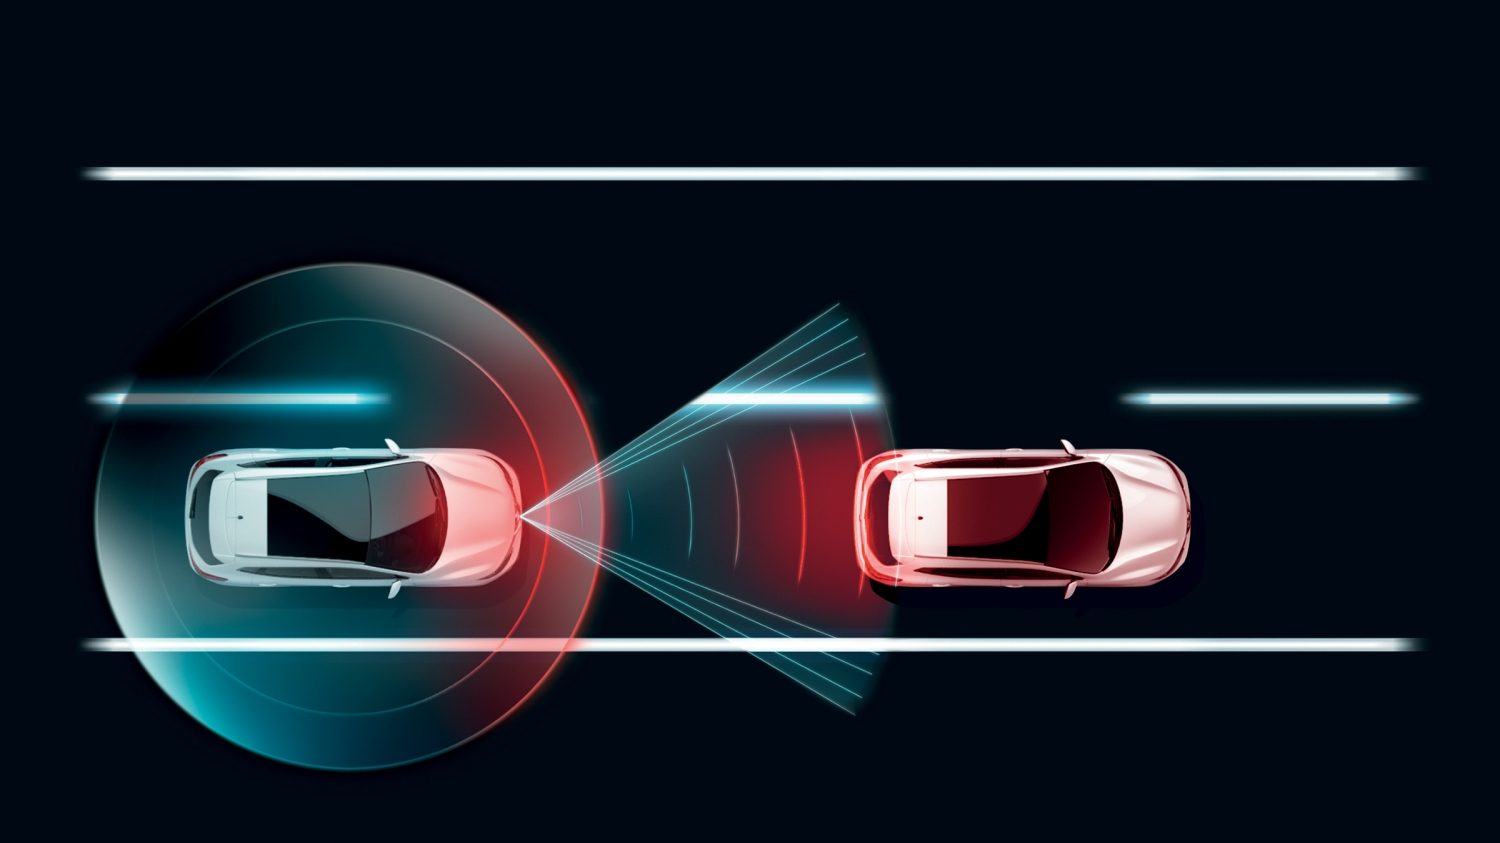 Intelligent Emergency Braking - New Nissan Qashqai